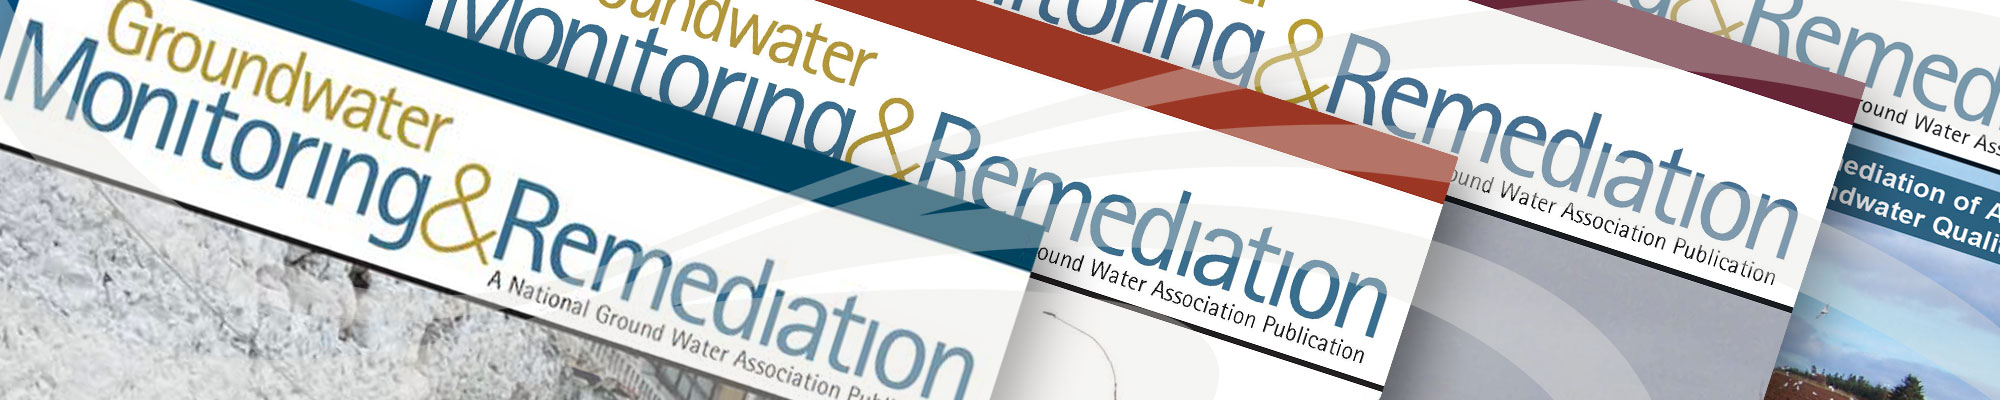 Groundwater Monitoring & Remediation